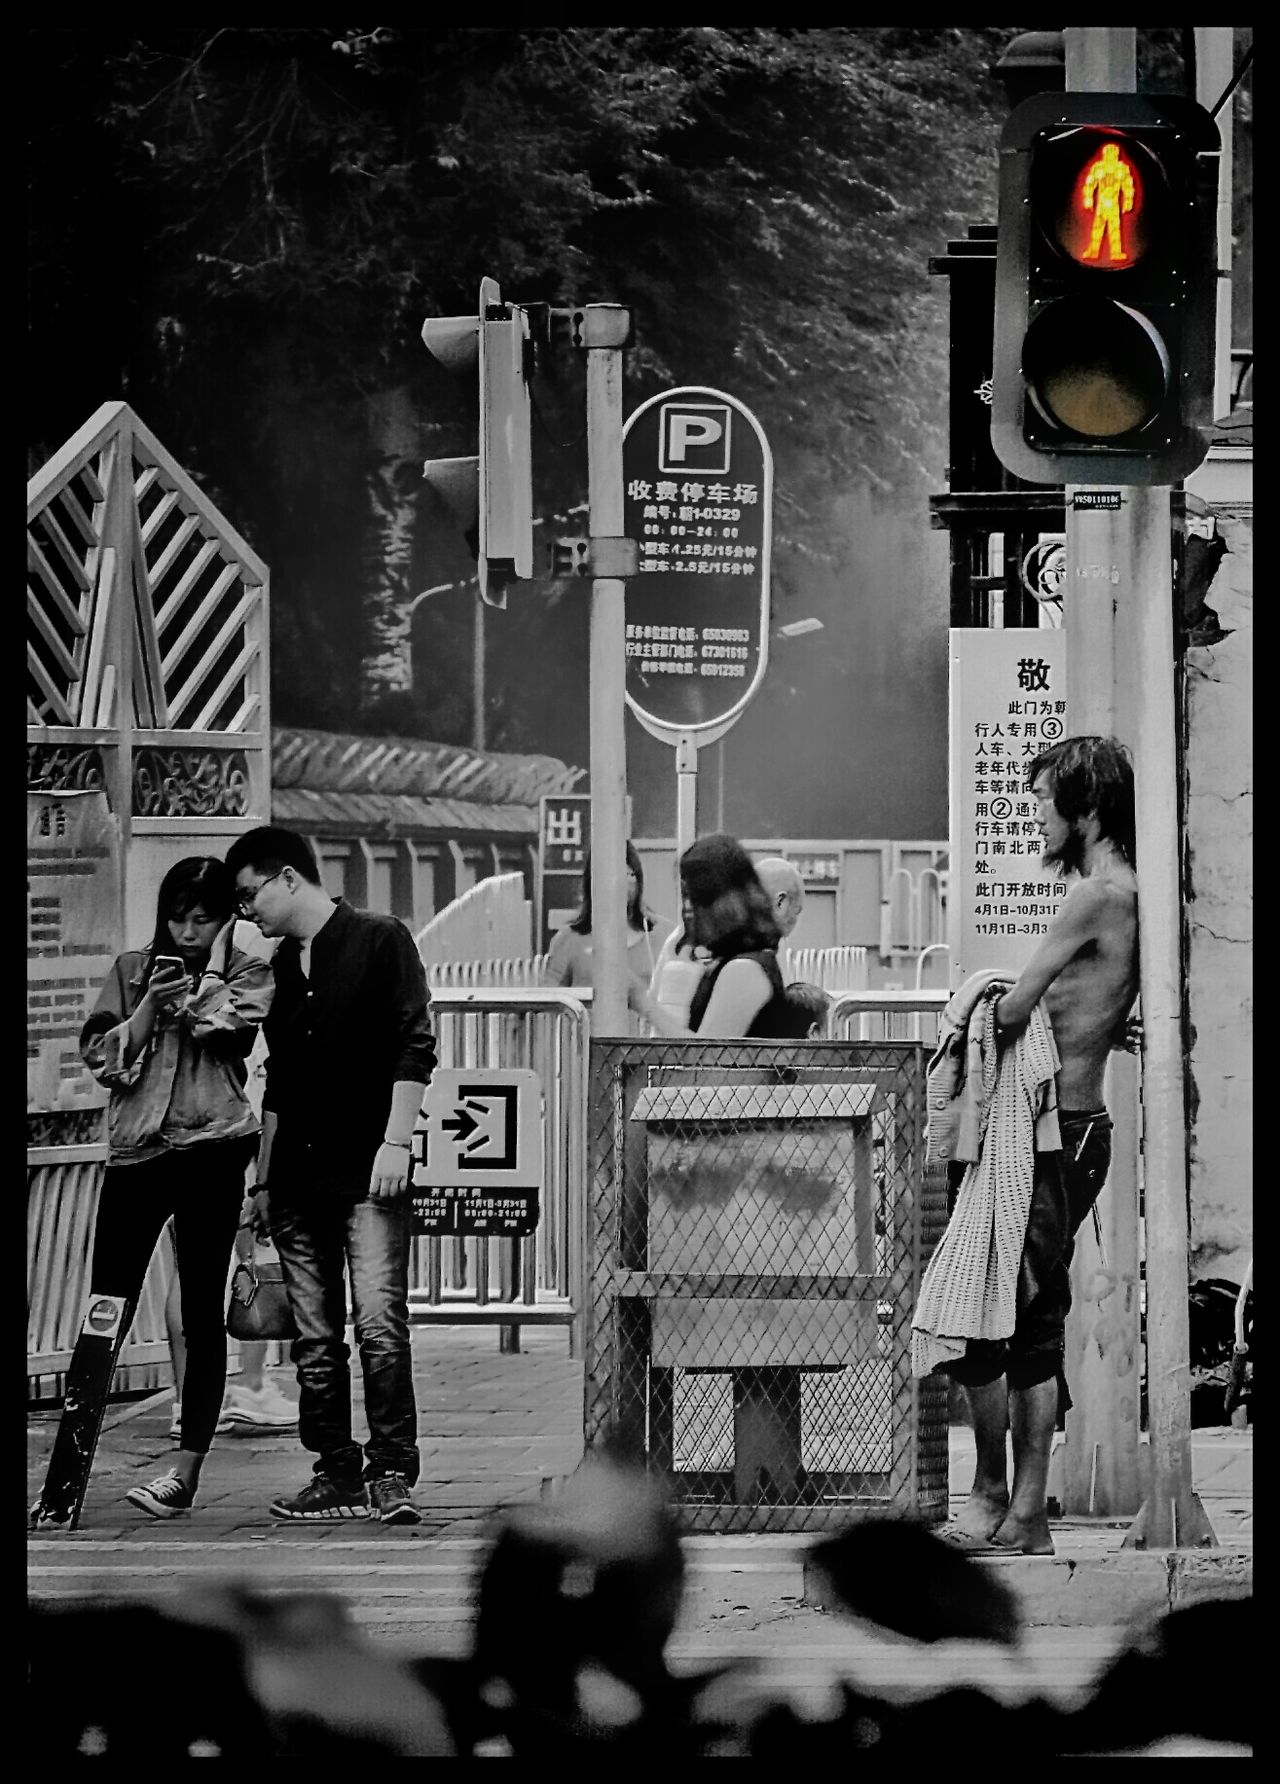 Solitude And Silence Un Homme Seul Portrait Black And White Street Street Photography Street Photos😄📷🏫⛪🚒🚐🚲⚠ Streetphotography BEIJING北京CHINA中国BEAUTY Human Interest Humaninterest Human Condition HUMANITY